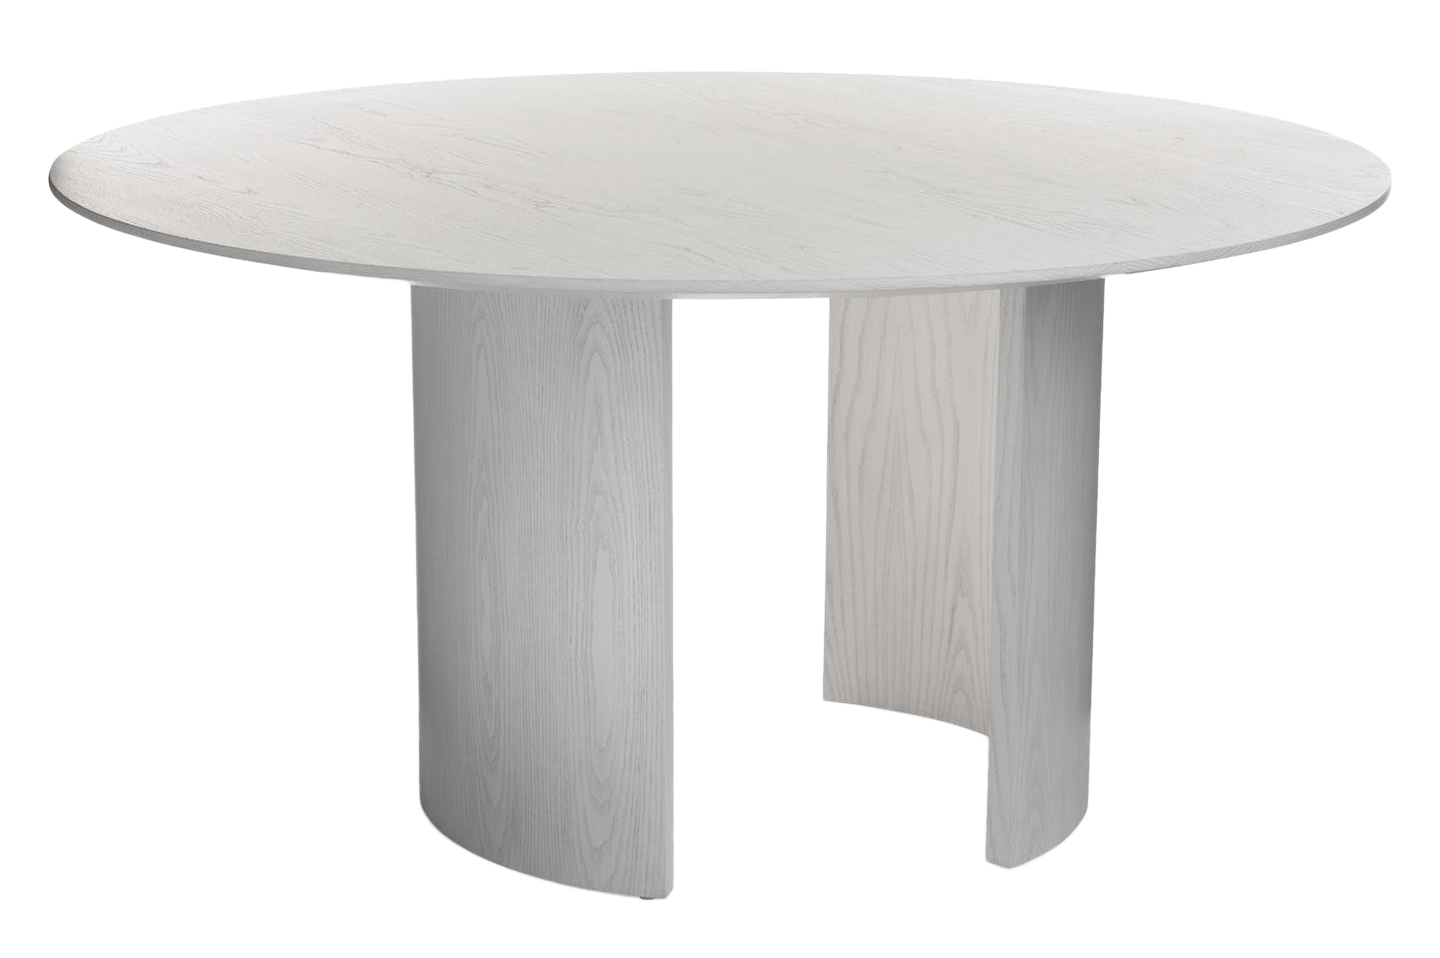 Cecil Round Dining Table. Shown inWhistler White on Ash. Customize with any BRADLEY wood finish.Lead time:8-10 weeks.